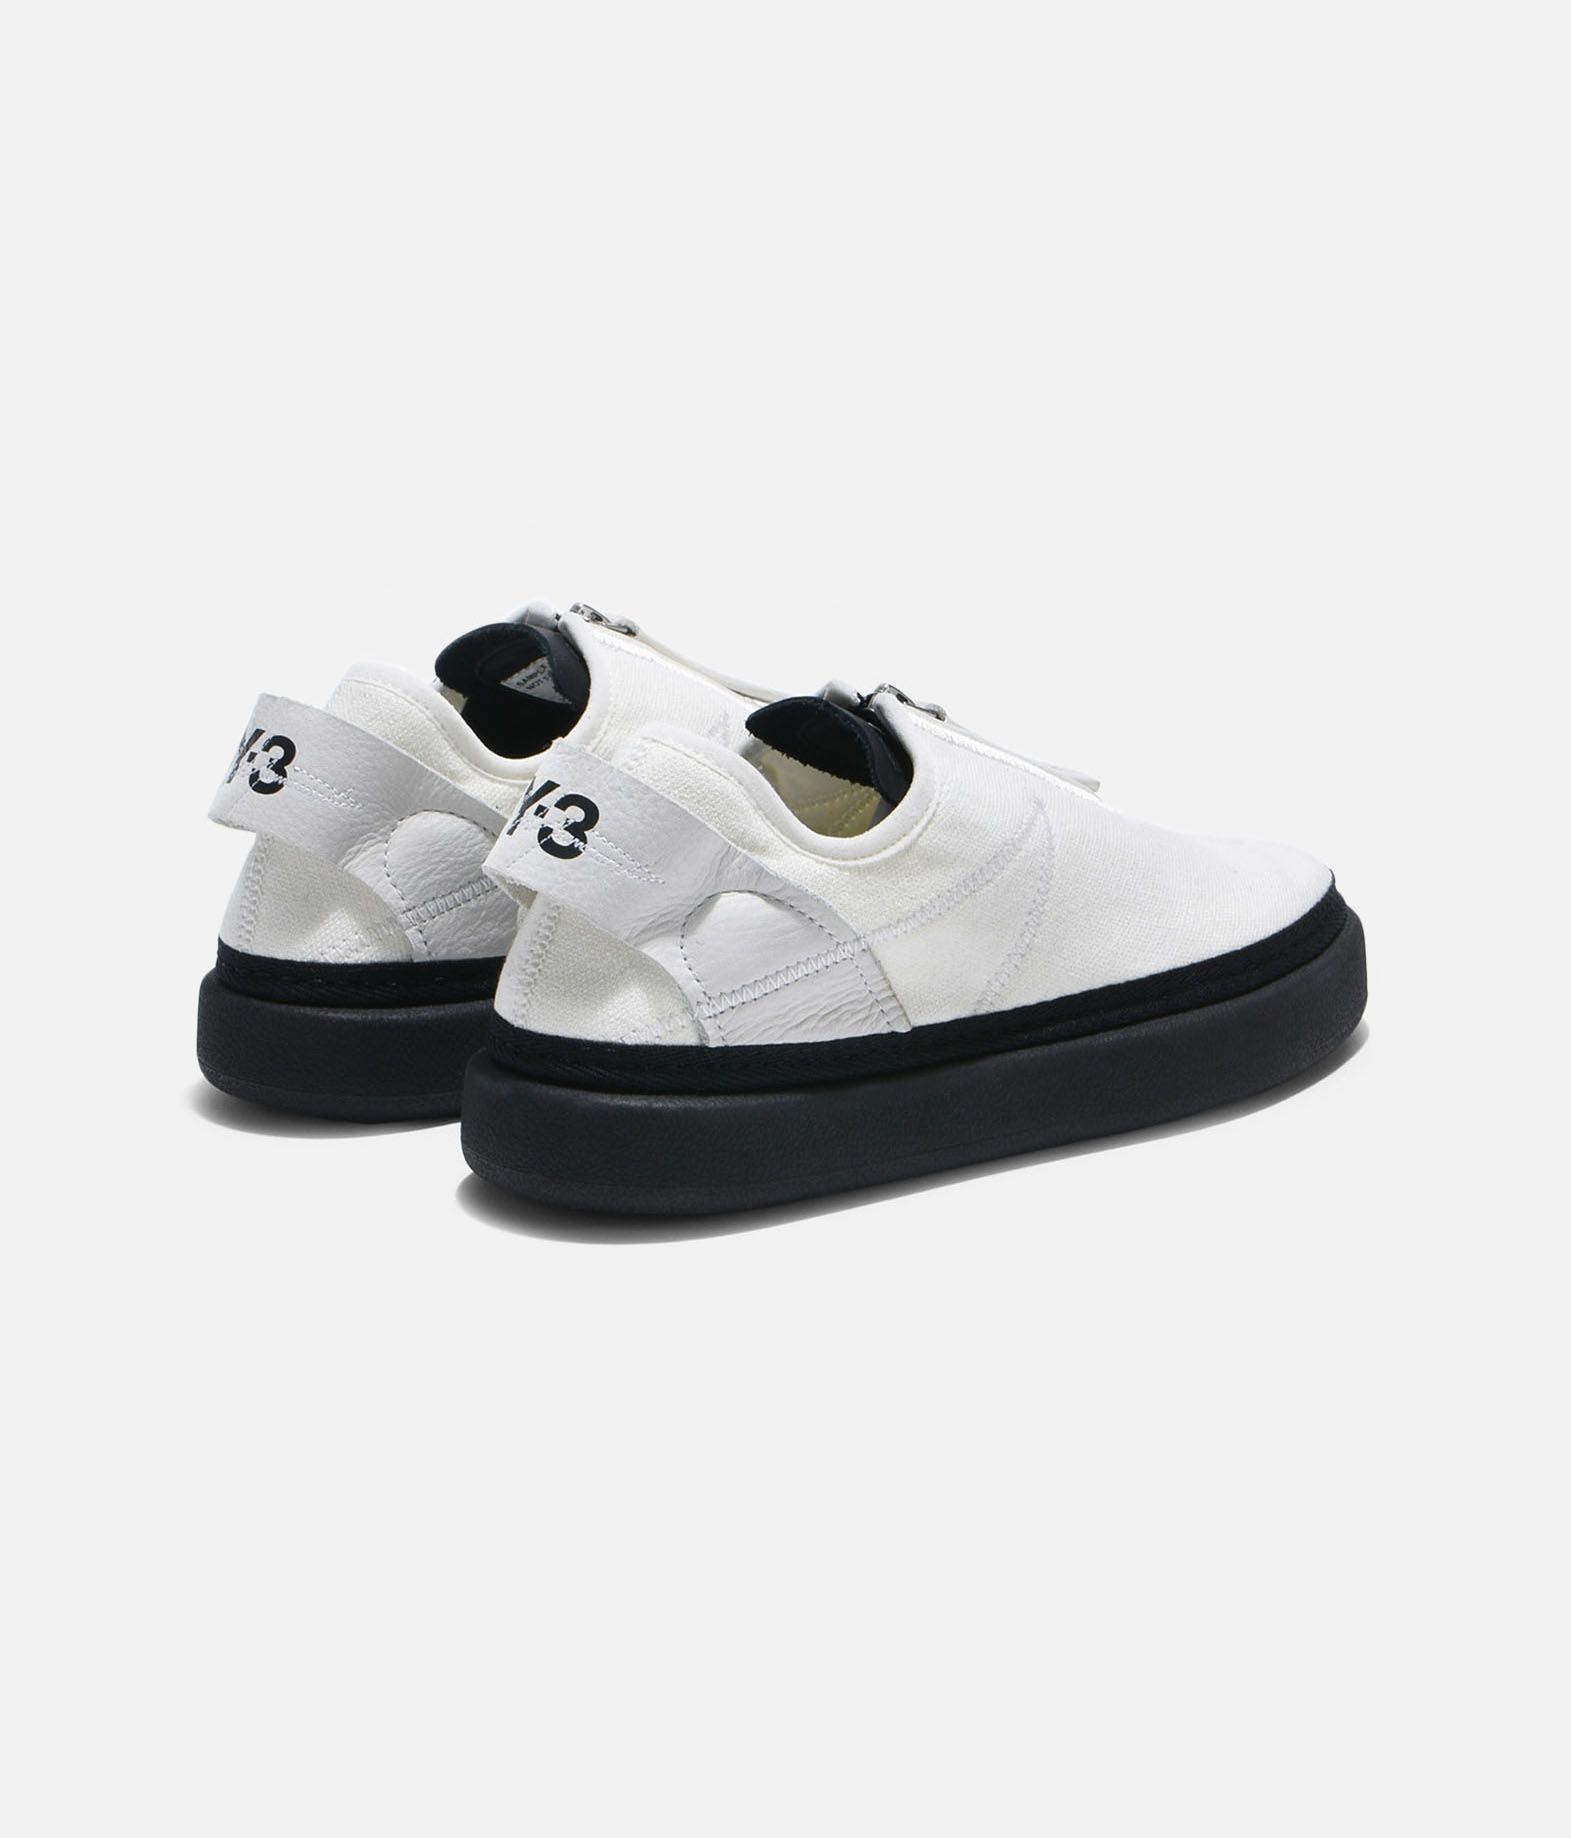 ce77bf903 Y-3 Y-3 Comfort Zip Sneakers Woman c